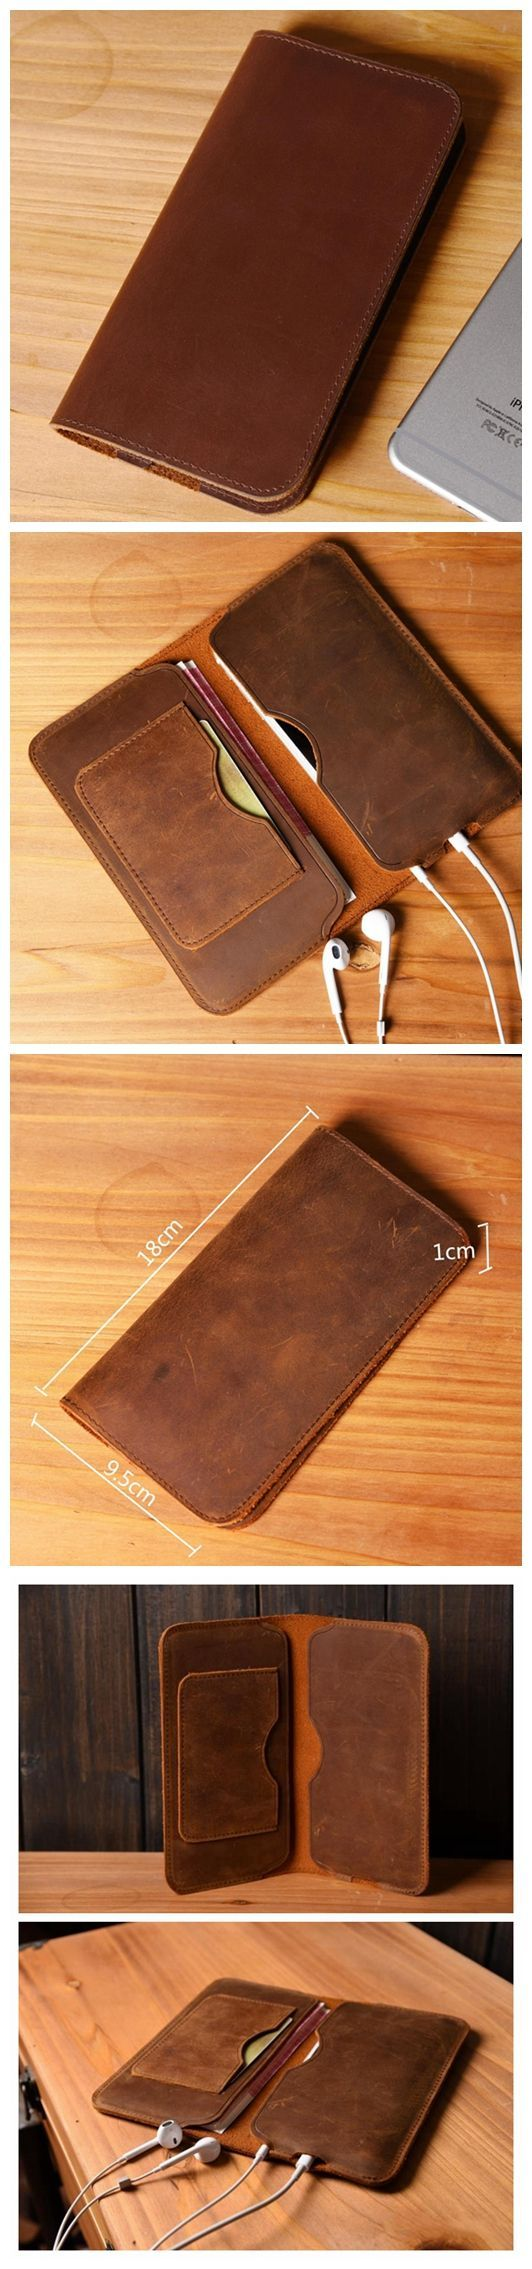 This handmade iPhone 6s wallet case is made from full grain distressed leather. We also make it for most iPhone and Samsung smartphones. This makes for an awesome, super unique gift idea. Leather Wall Get leather wallets at 90% off wholesale price. #leatherwallets